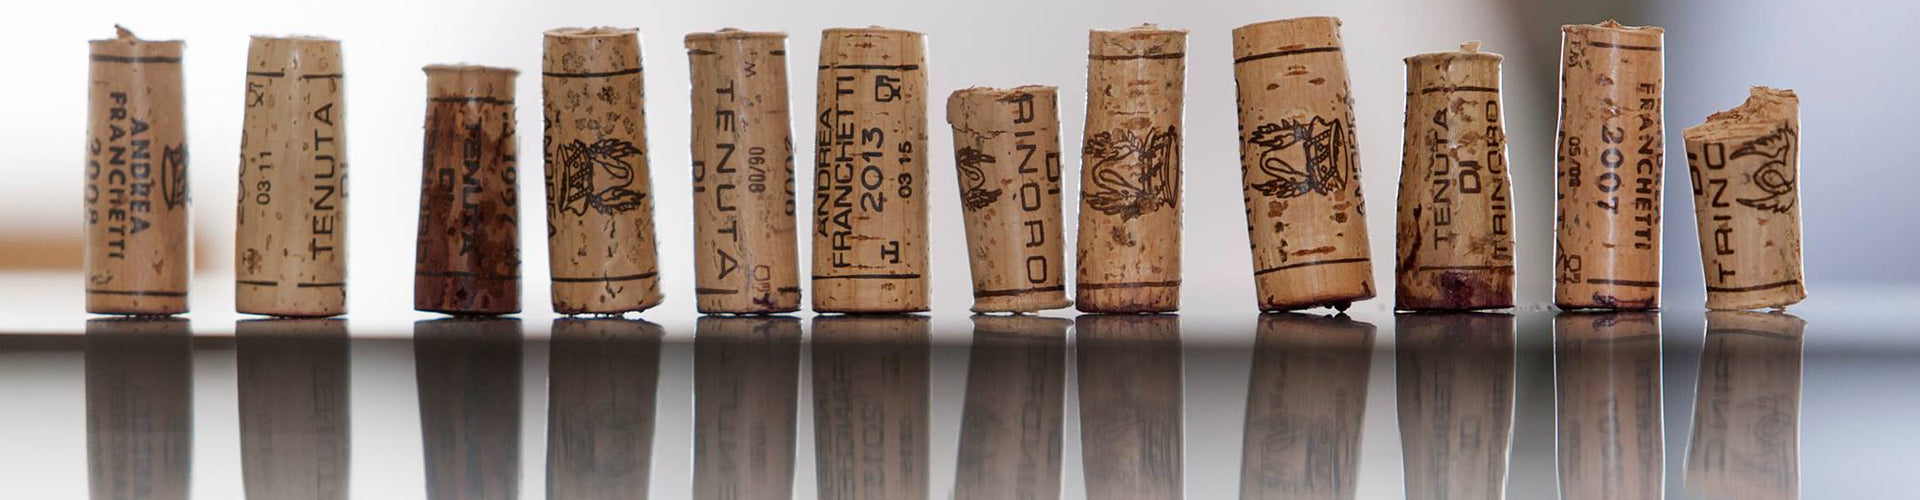 Collection of Tenuta di Trinoro Corks